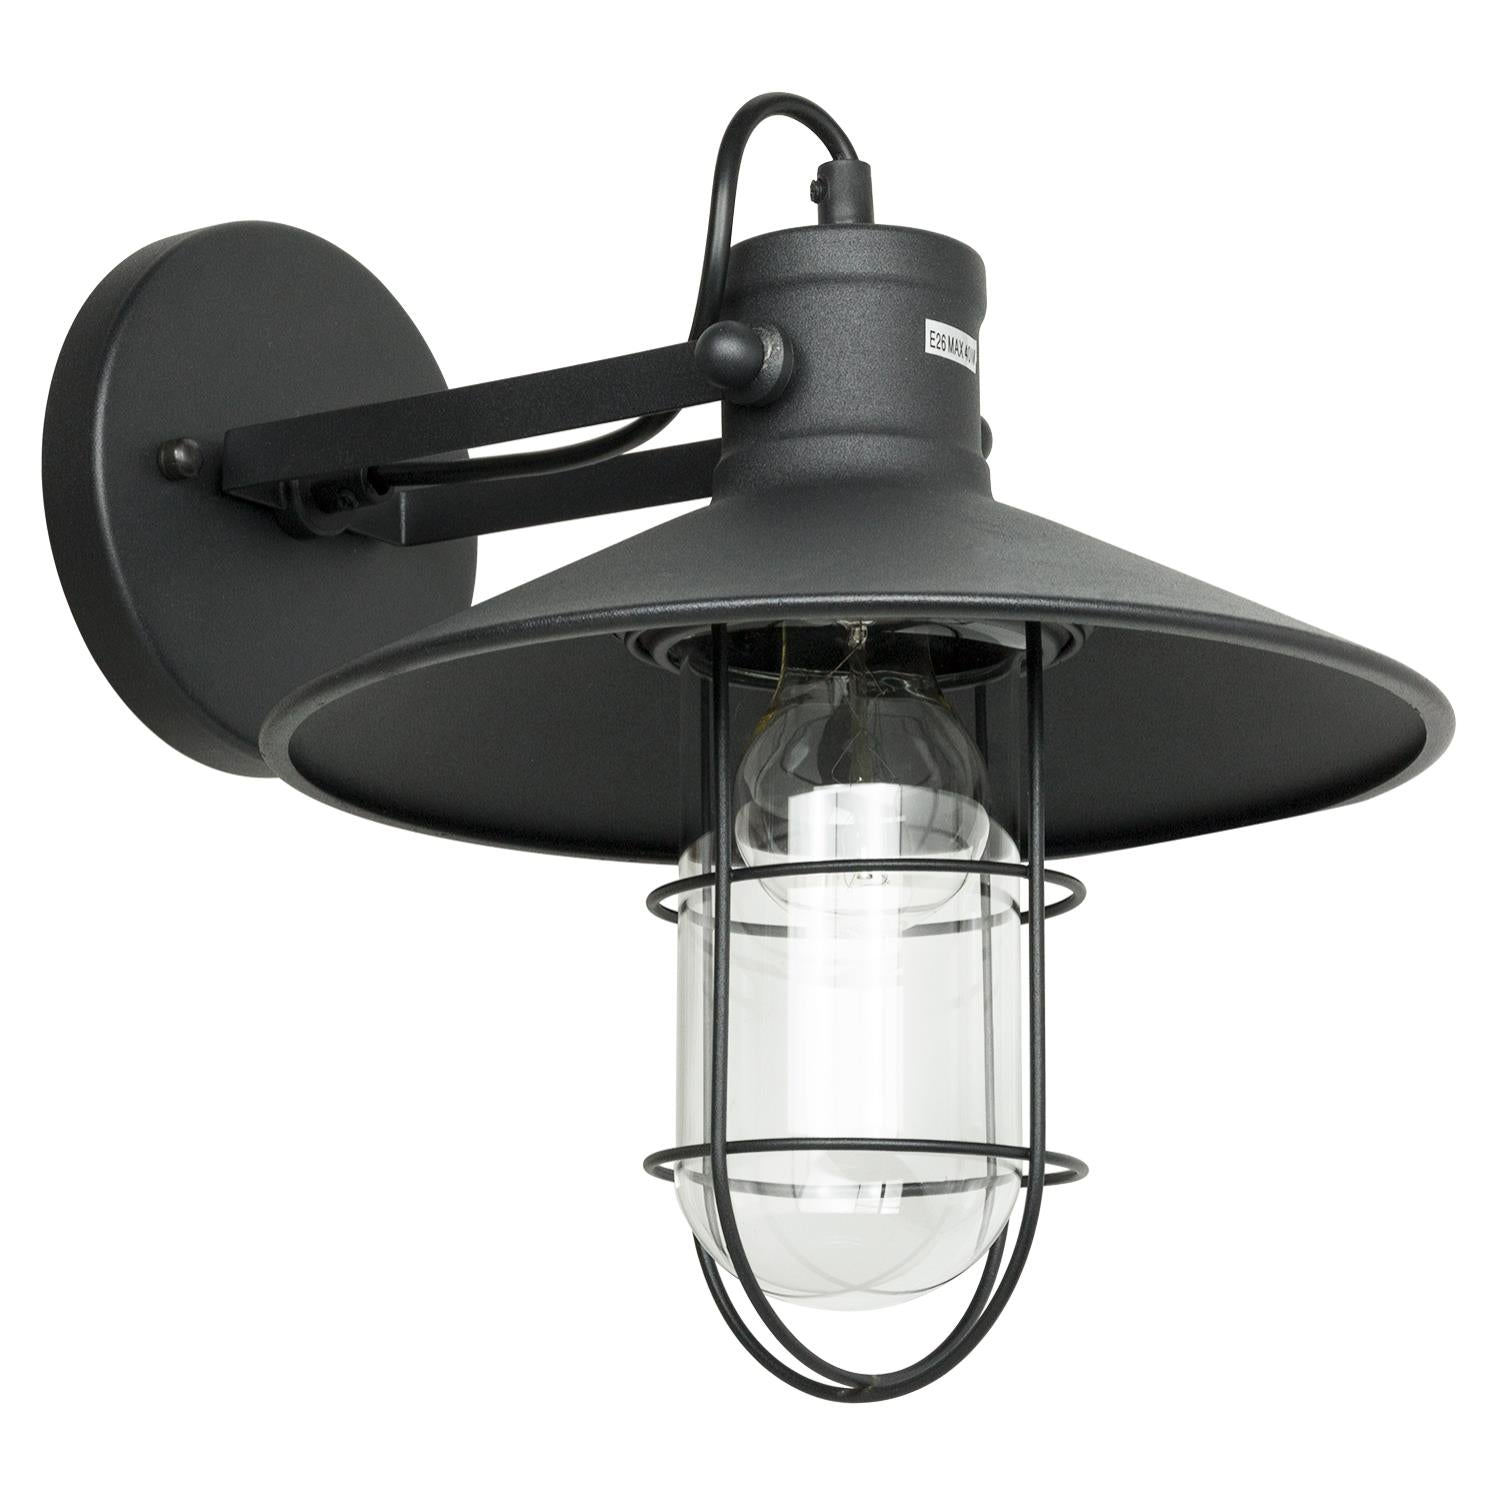 SUNLITE 07054-SU E26 Canopy Cage Oil Black Wall Lighting Fixture